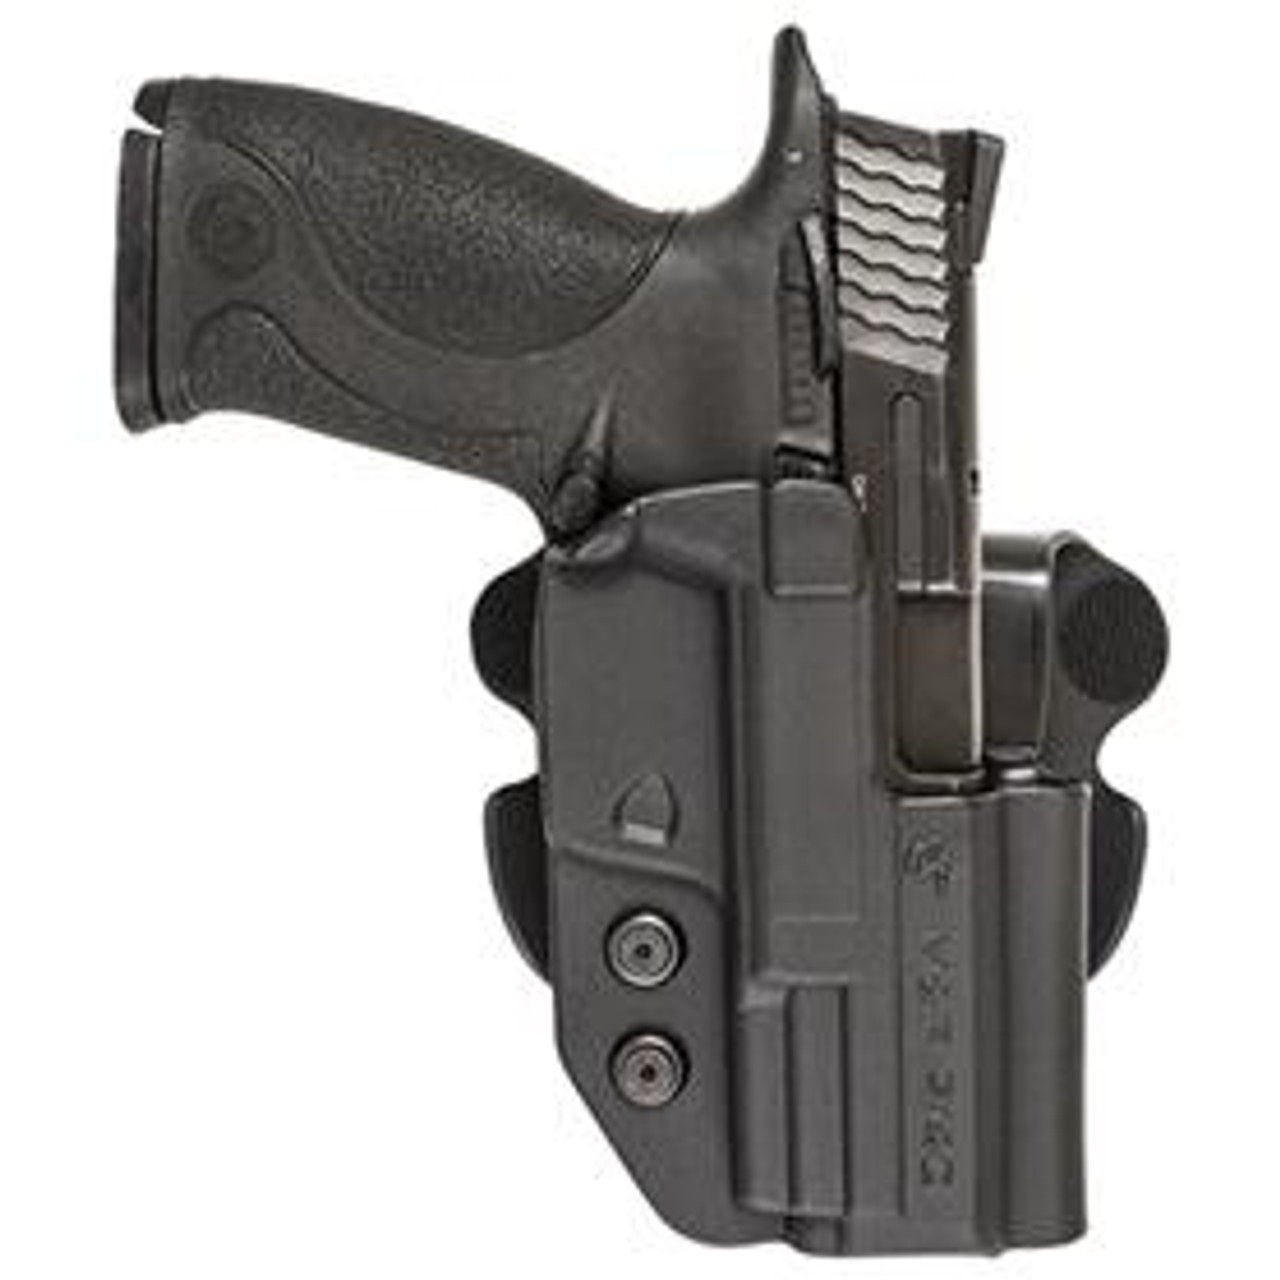 Paddle™ Holster | OWB Concealed Carry | Competition | Comp-Tac